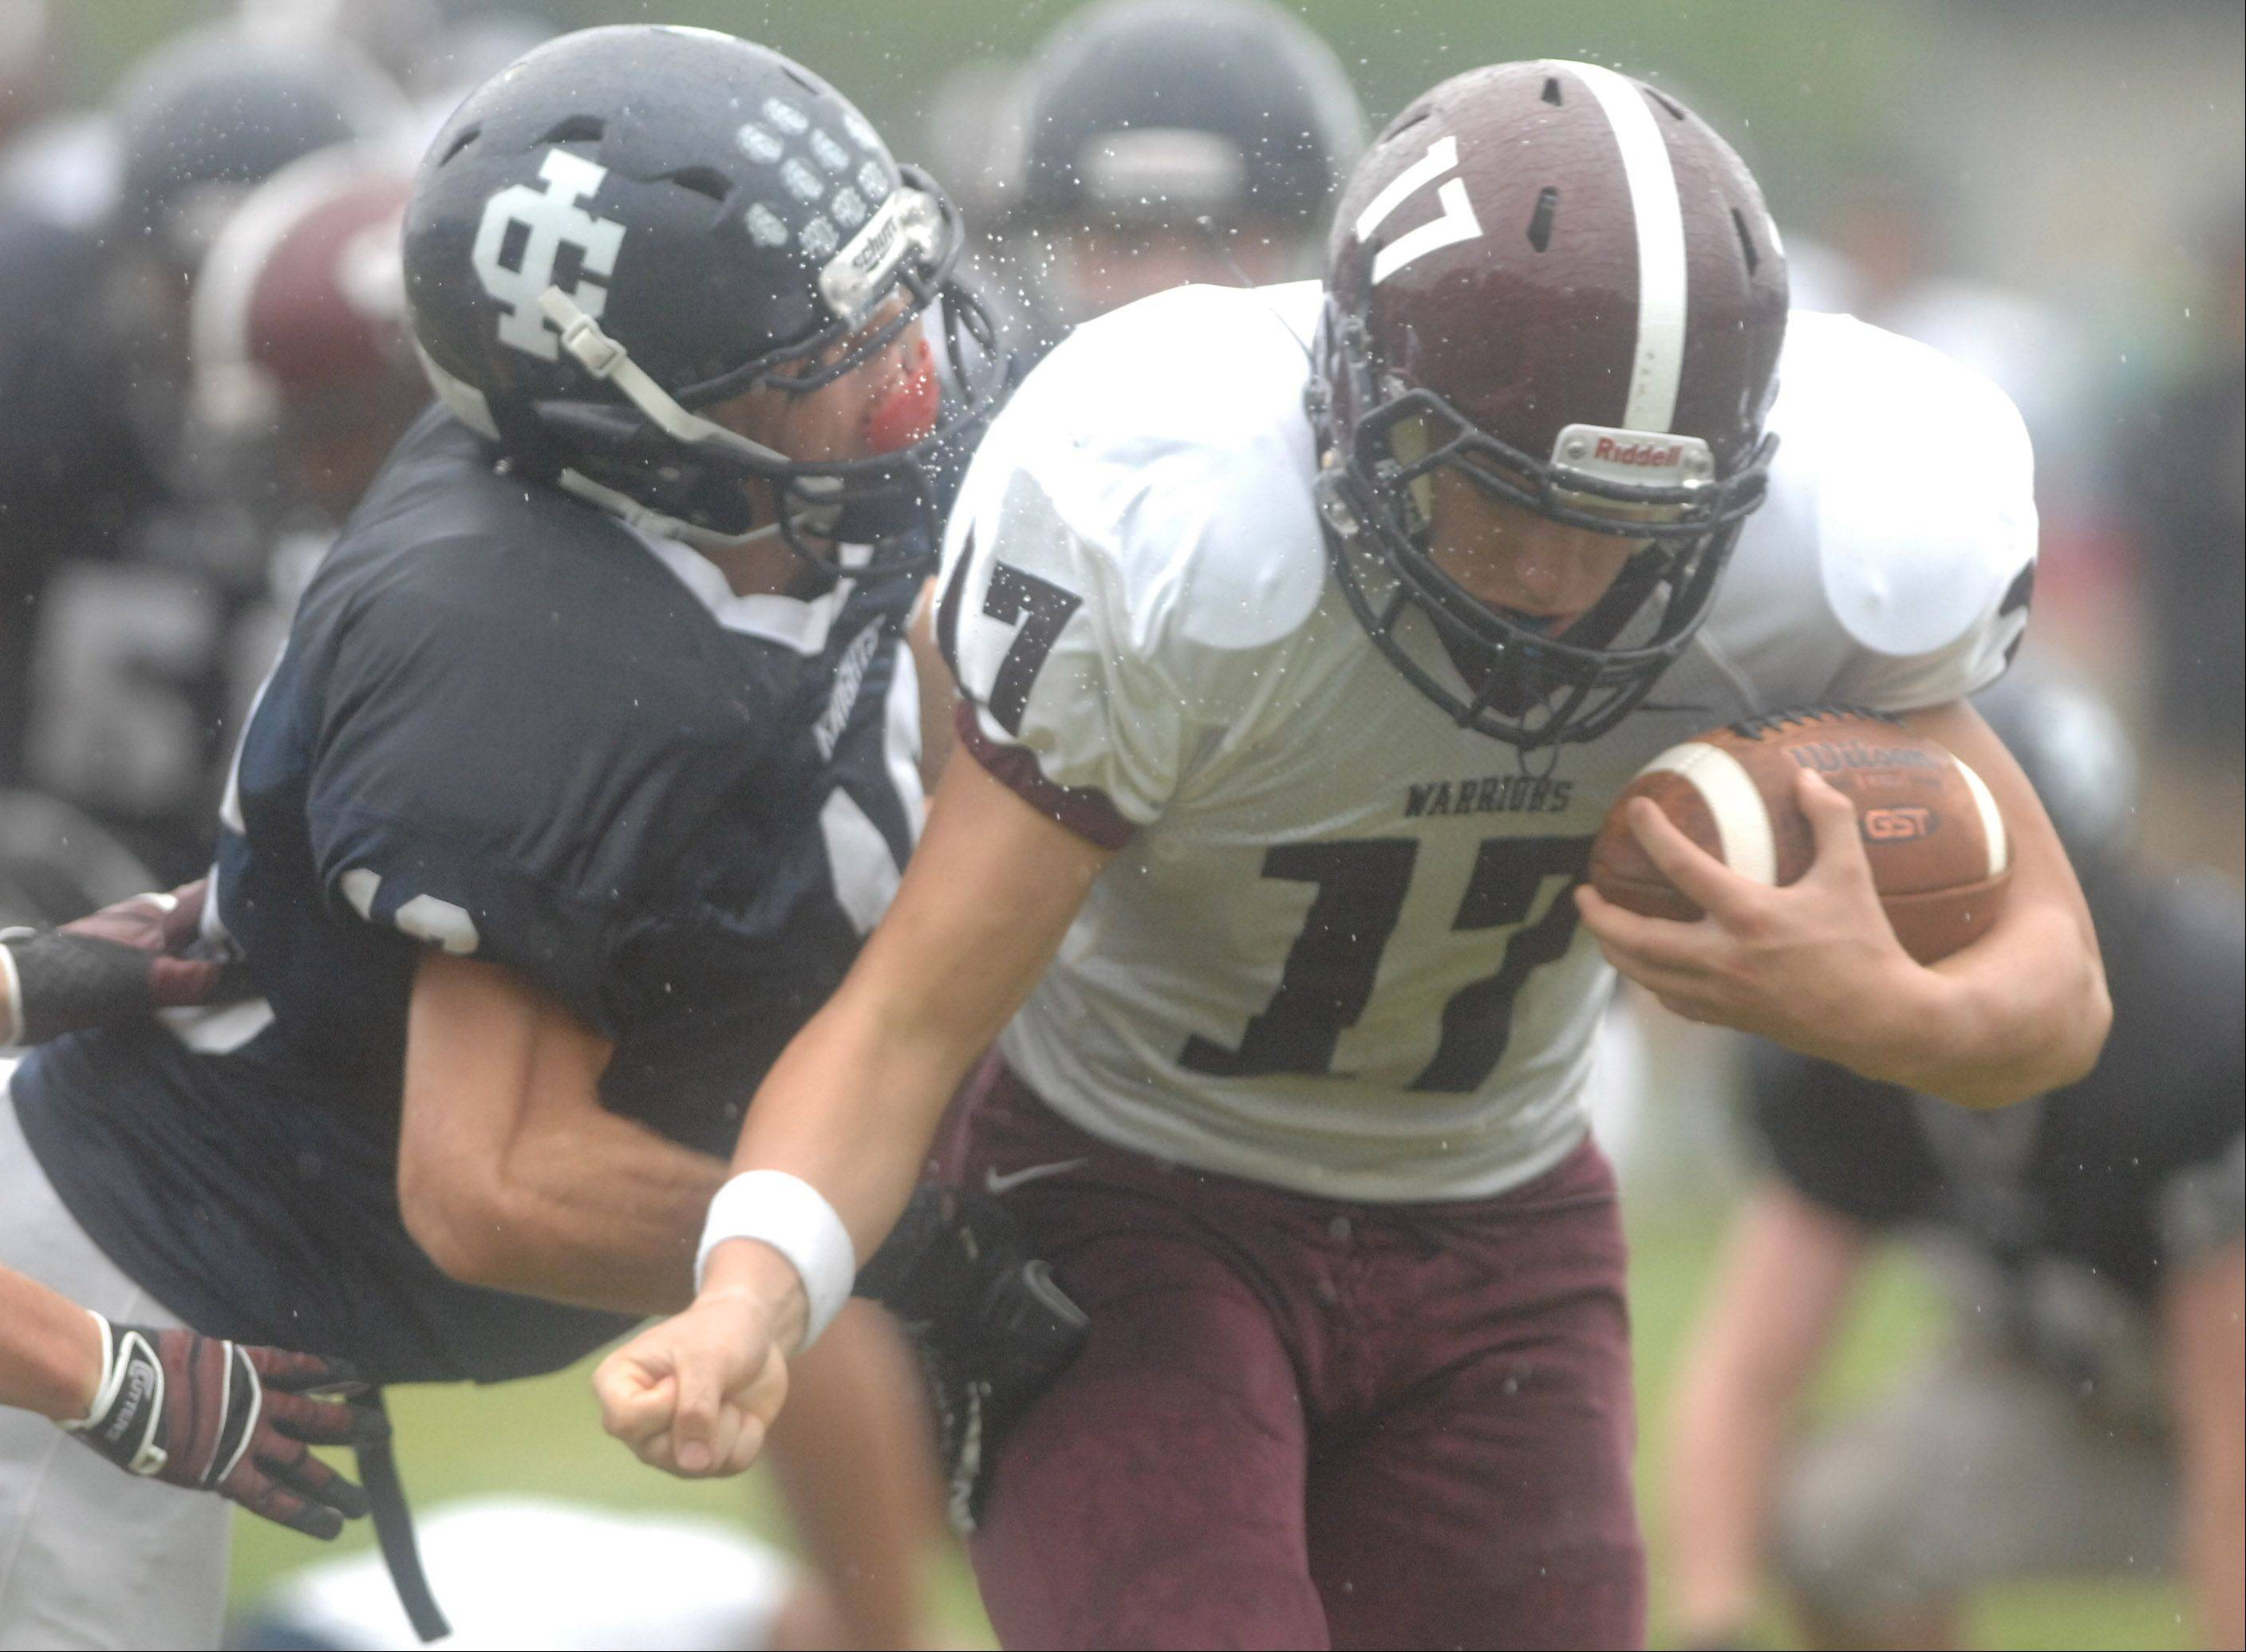 Nate Martinez of Wheaton Academy tries to get away from an Immaculate Conception defender during the Wheaton Academy vs. Immaculate Conception game in Elmhurst Saturday.